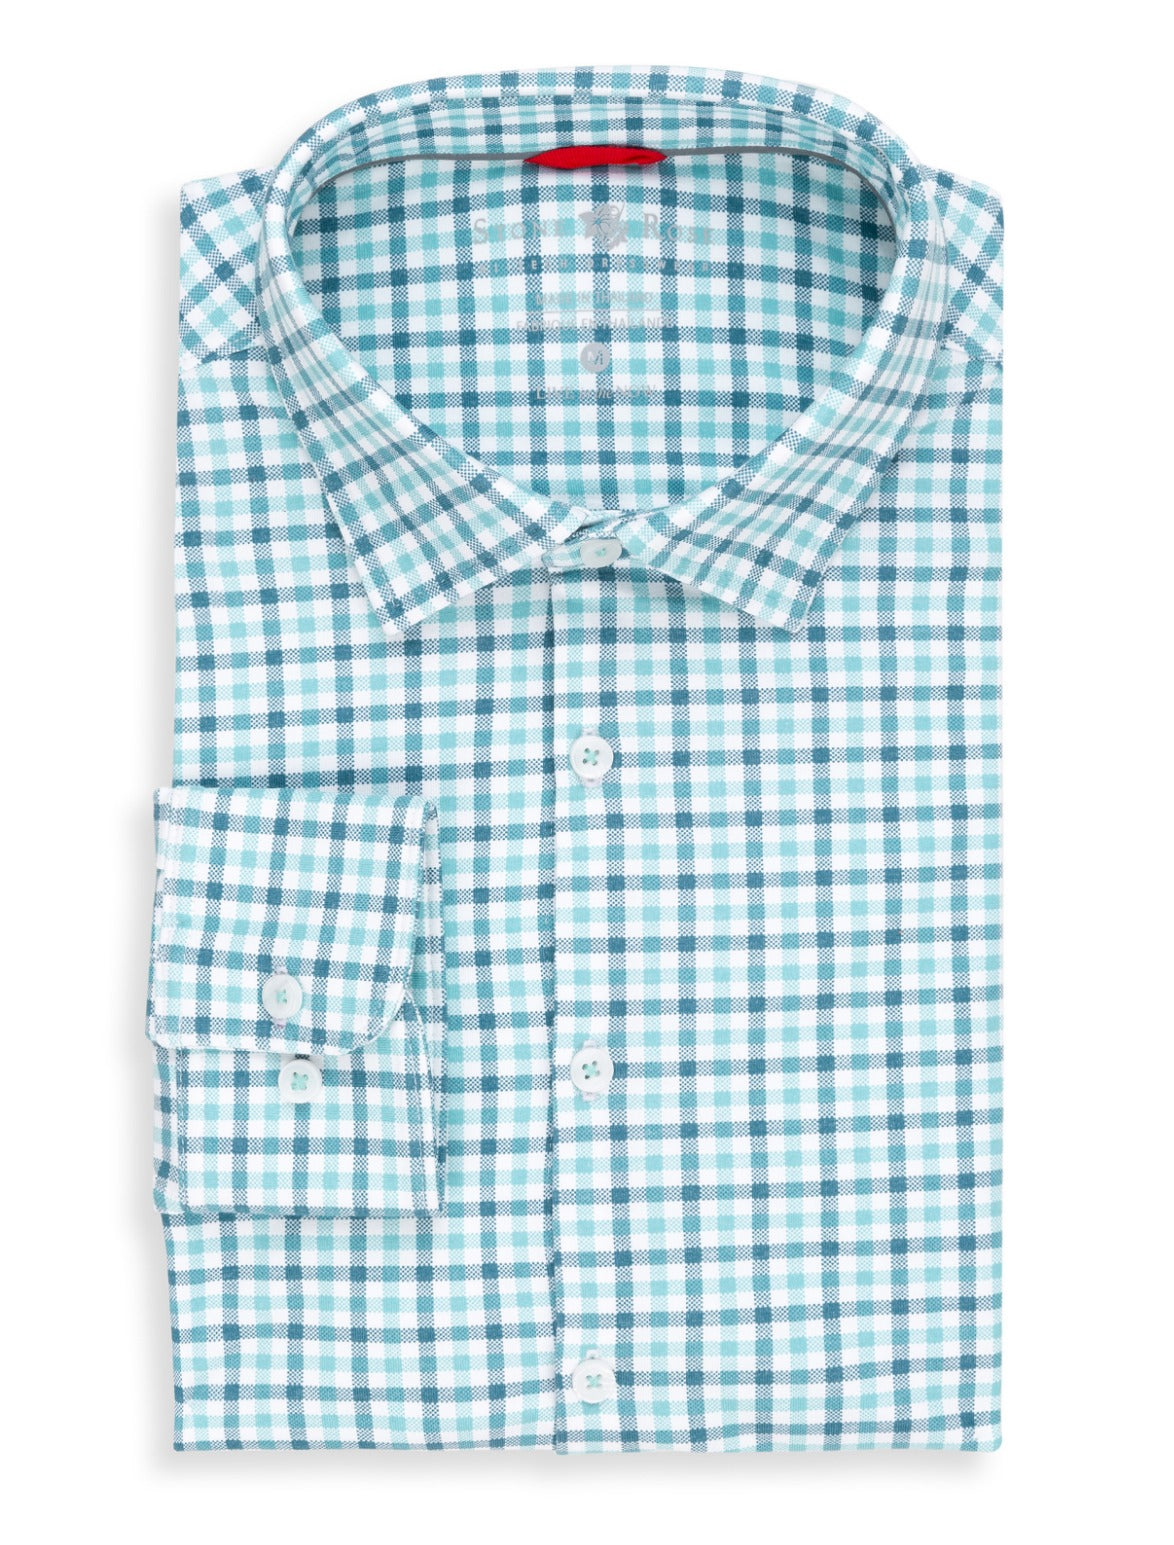 Teal Check Performance Knit Long Sleeve Shirt